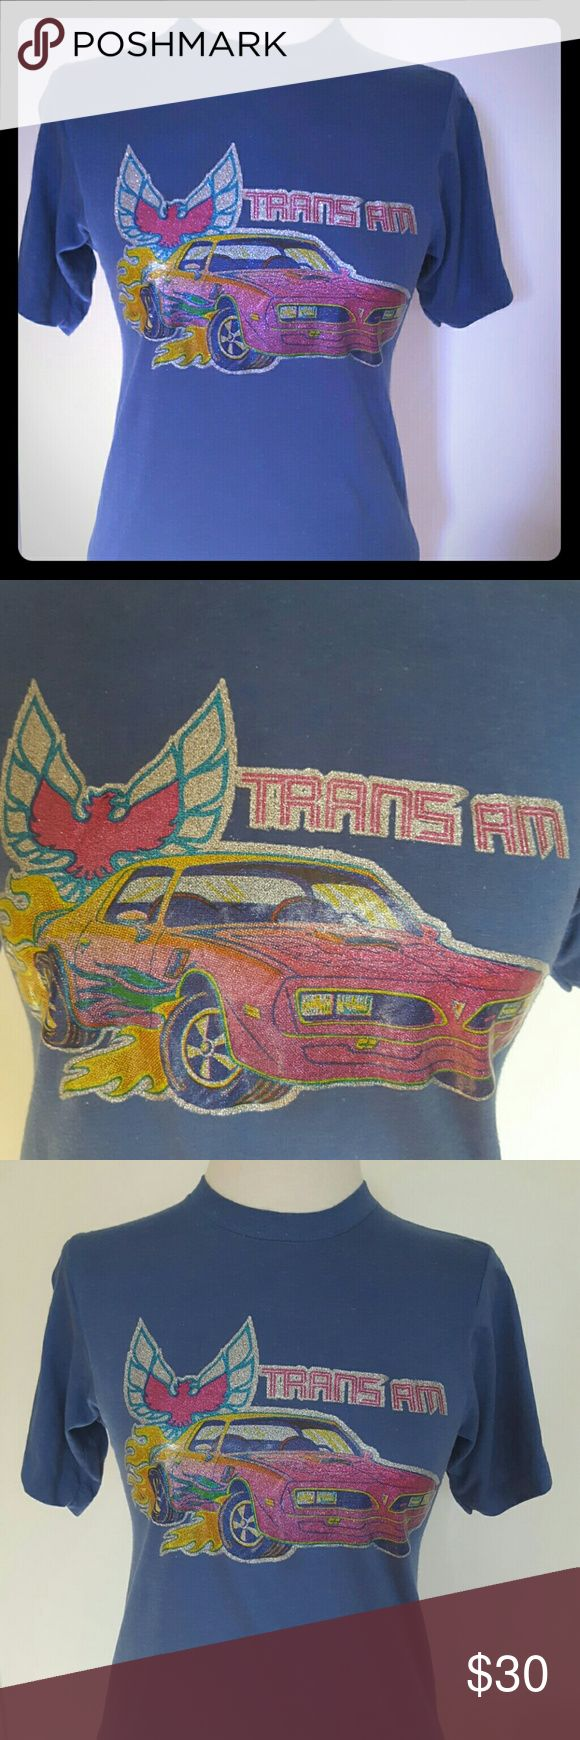 """Womens Car Muscle Trans AM 80s graphic tee 1980s puffy iron on Muscle Car Trans AM Tee. Super cute shirt fits small/ medium ladies. Great colors within this rad shirt. Bound to get compliments!  Length: 25"""" inches Across: 17"""" inches Vintage Tops Tees - Short Sleeve"""